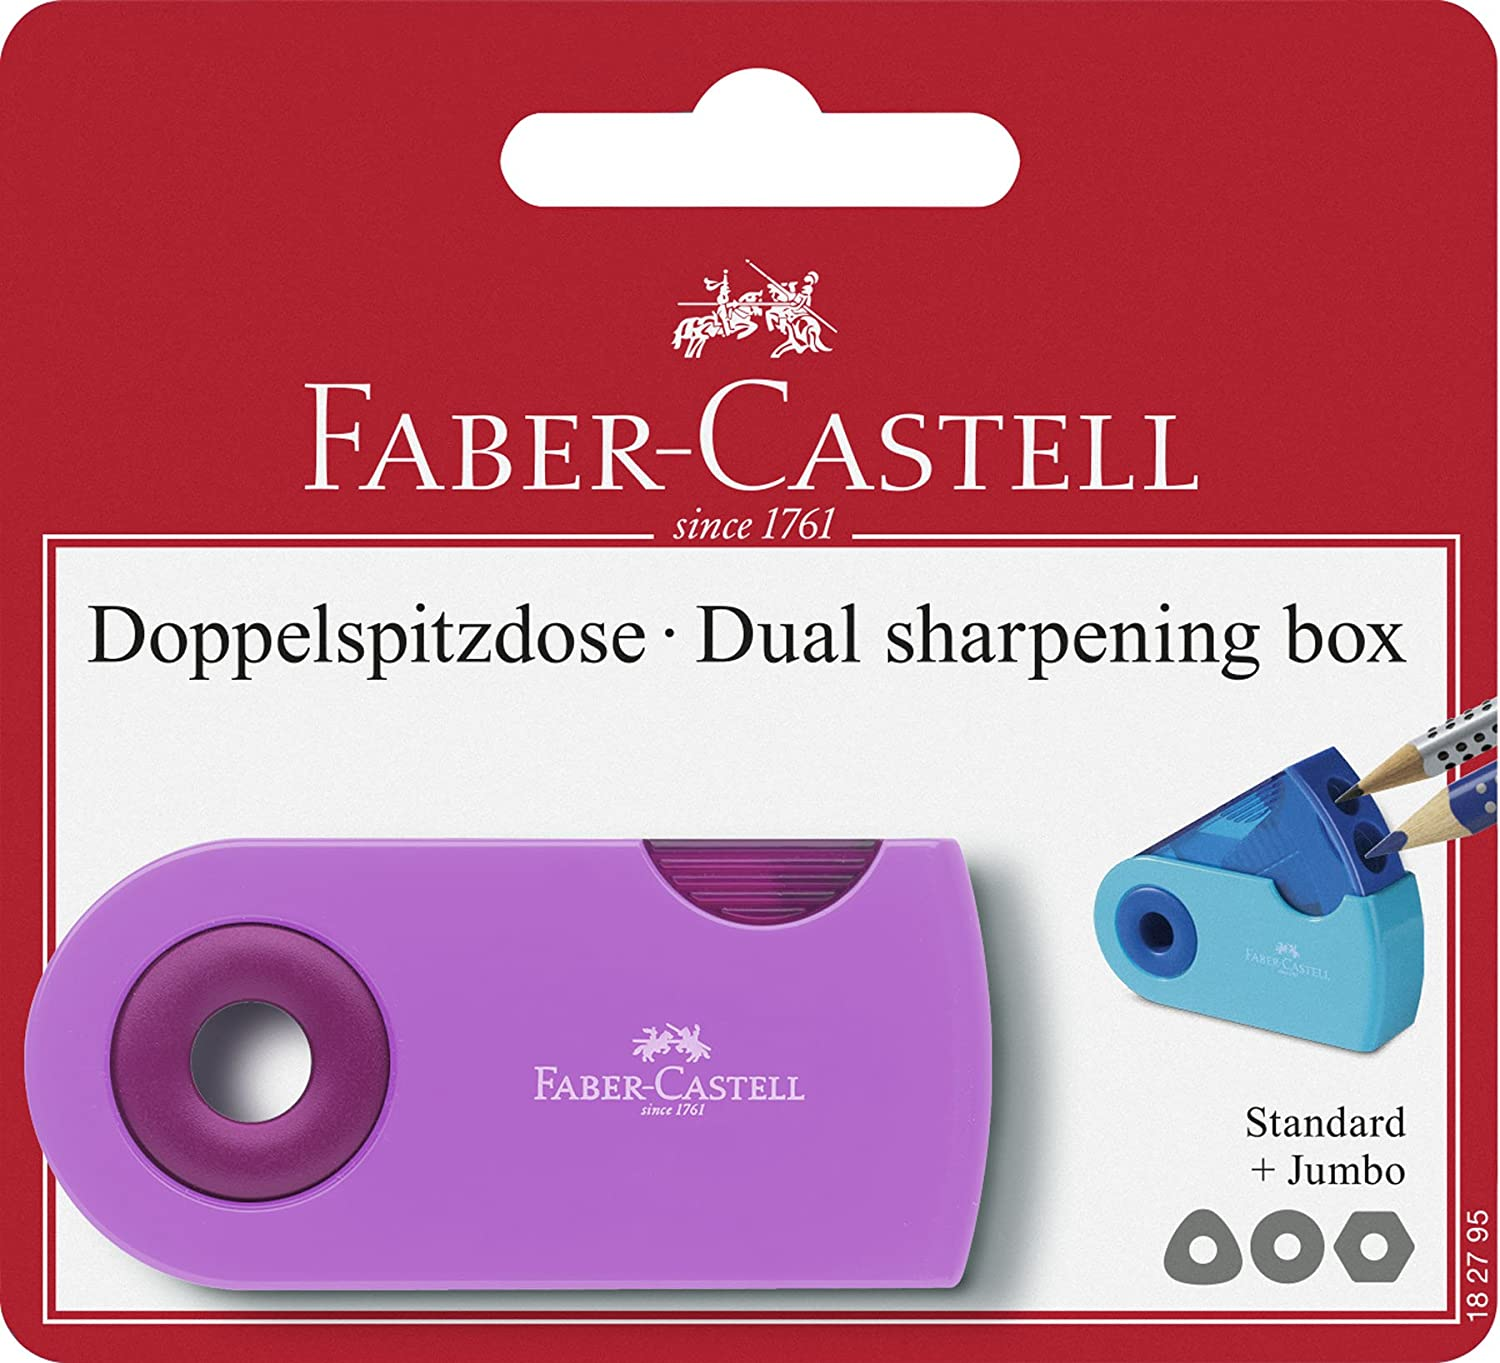 Faber-Castell 182795 - Doppelspitzdose Sleeve Trend, Anspitzer, Sortiert